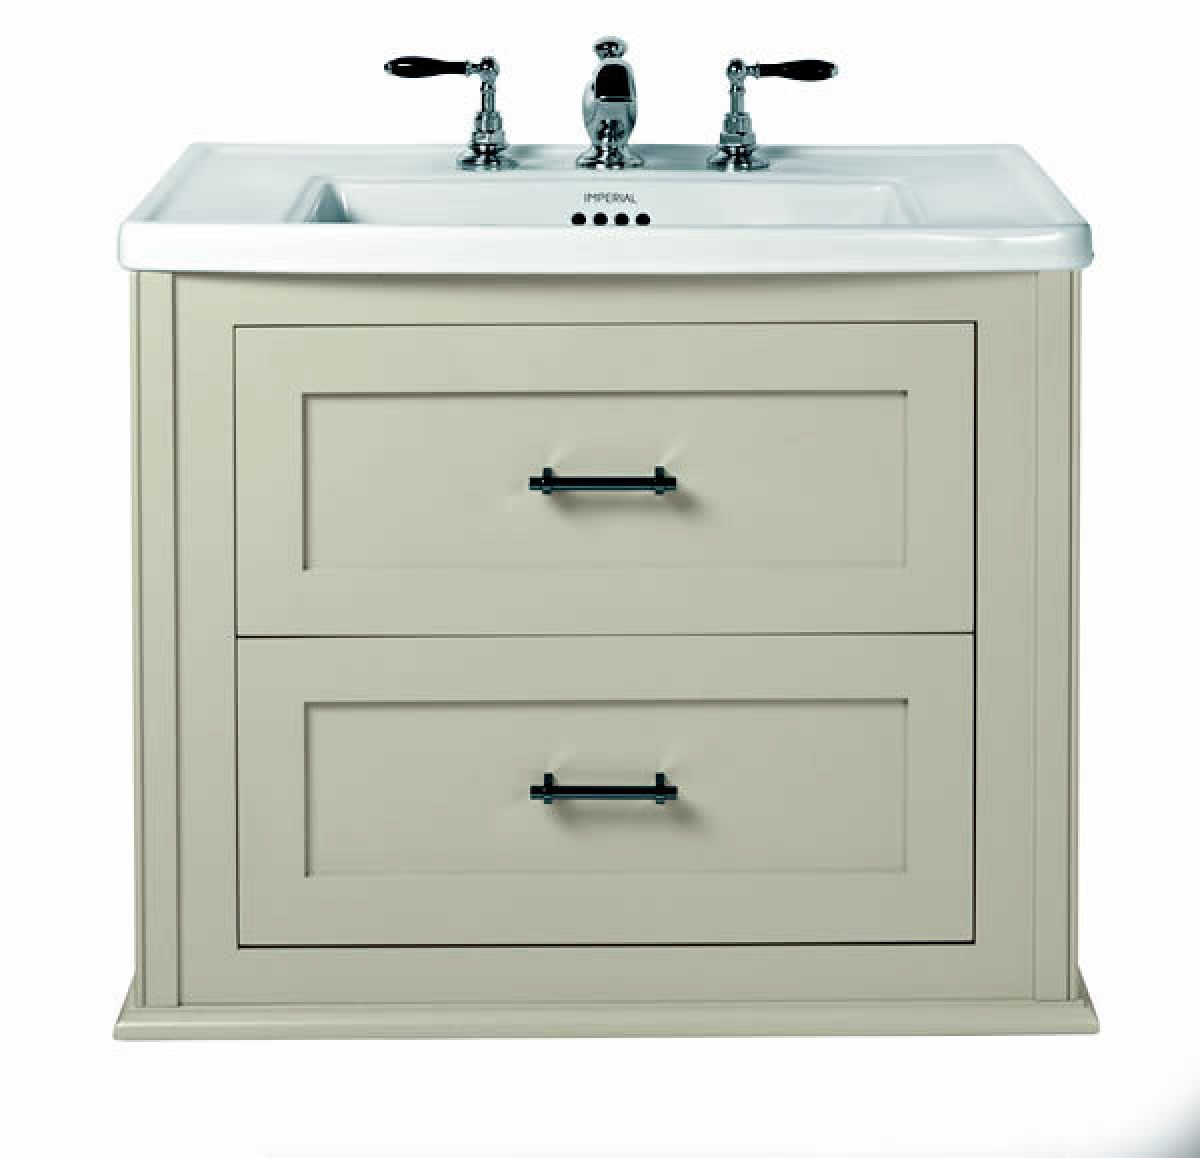 ... Imperial Radcliffe Thurlestone Wall Hung Vanity Unit ...